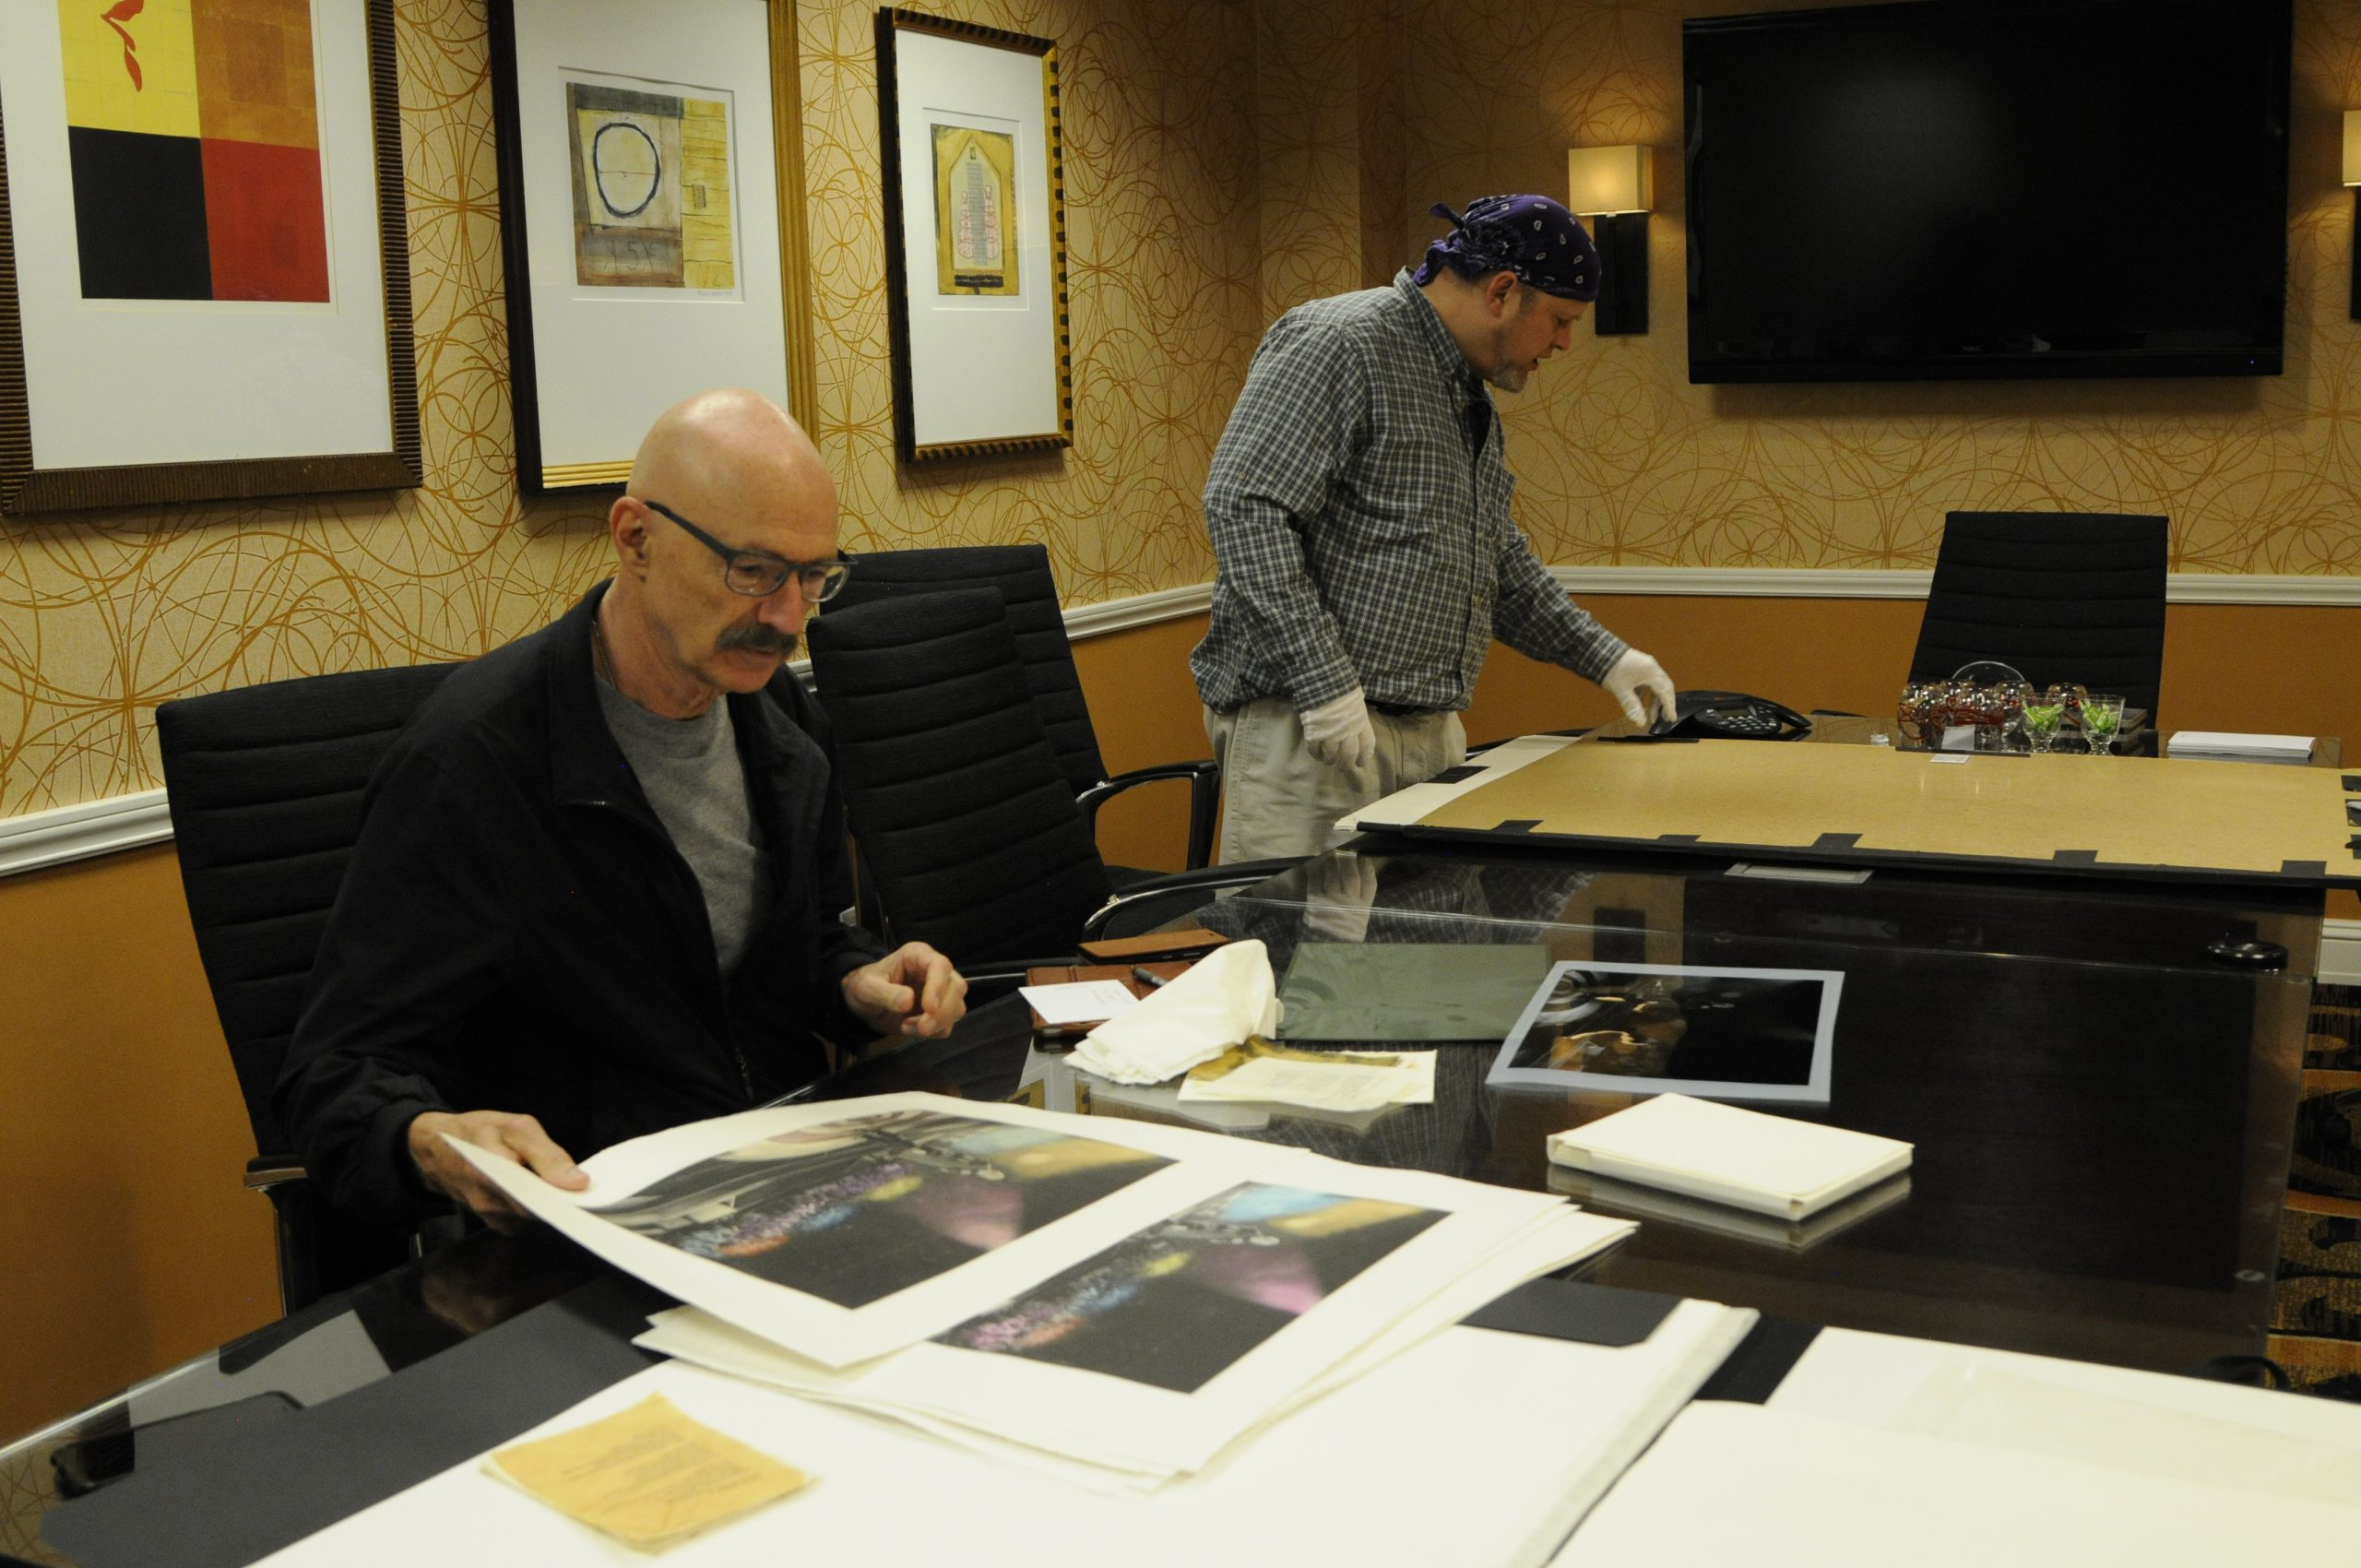 Tony Levin working with printmaker Jon Lybrook